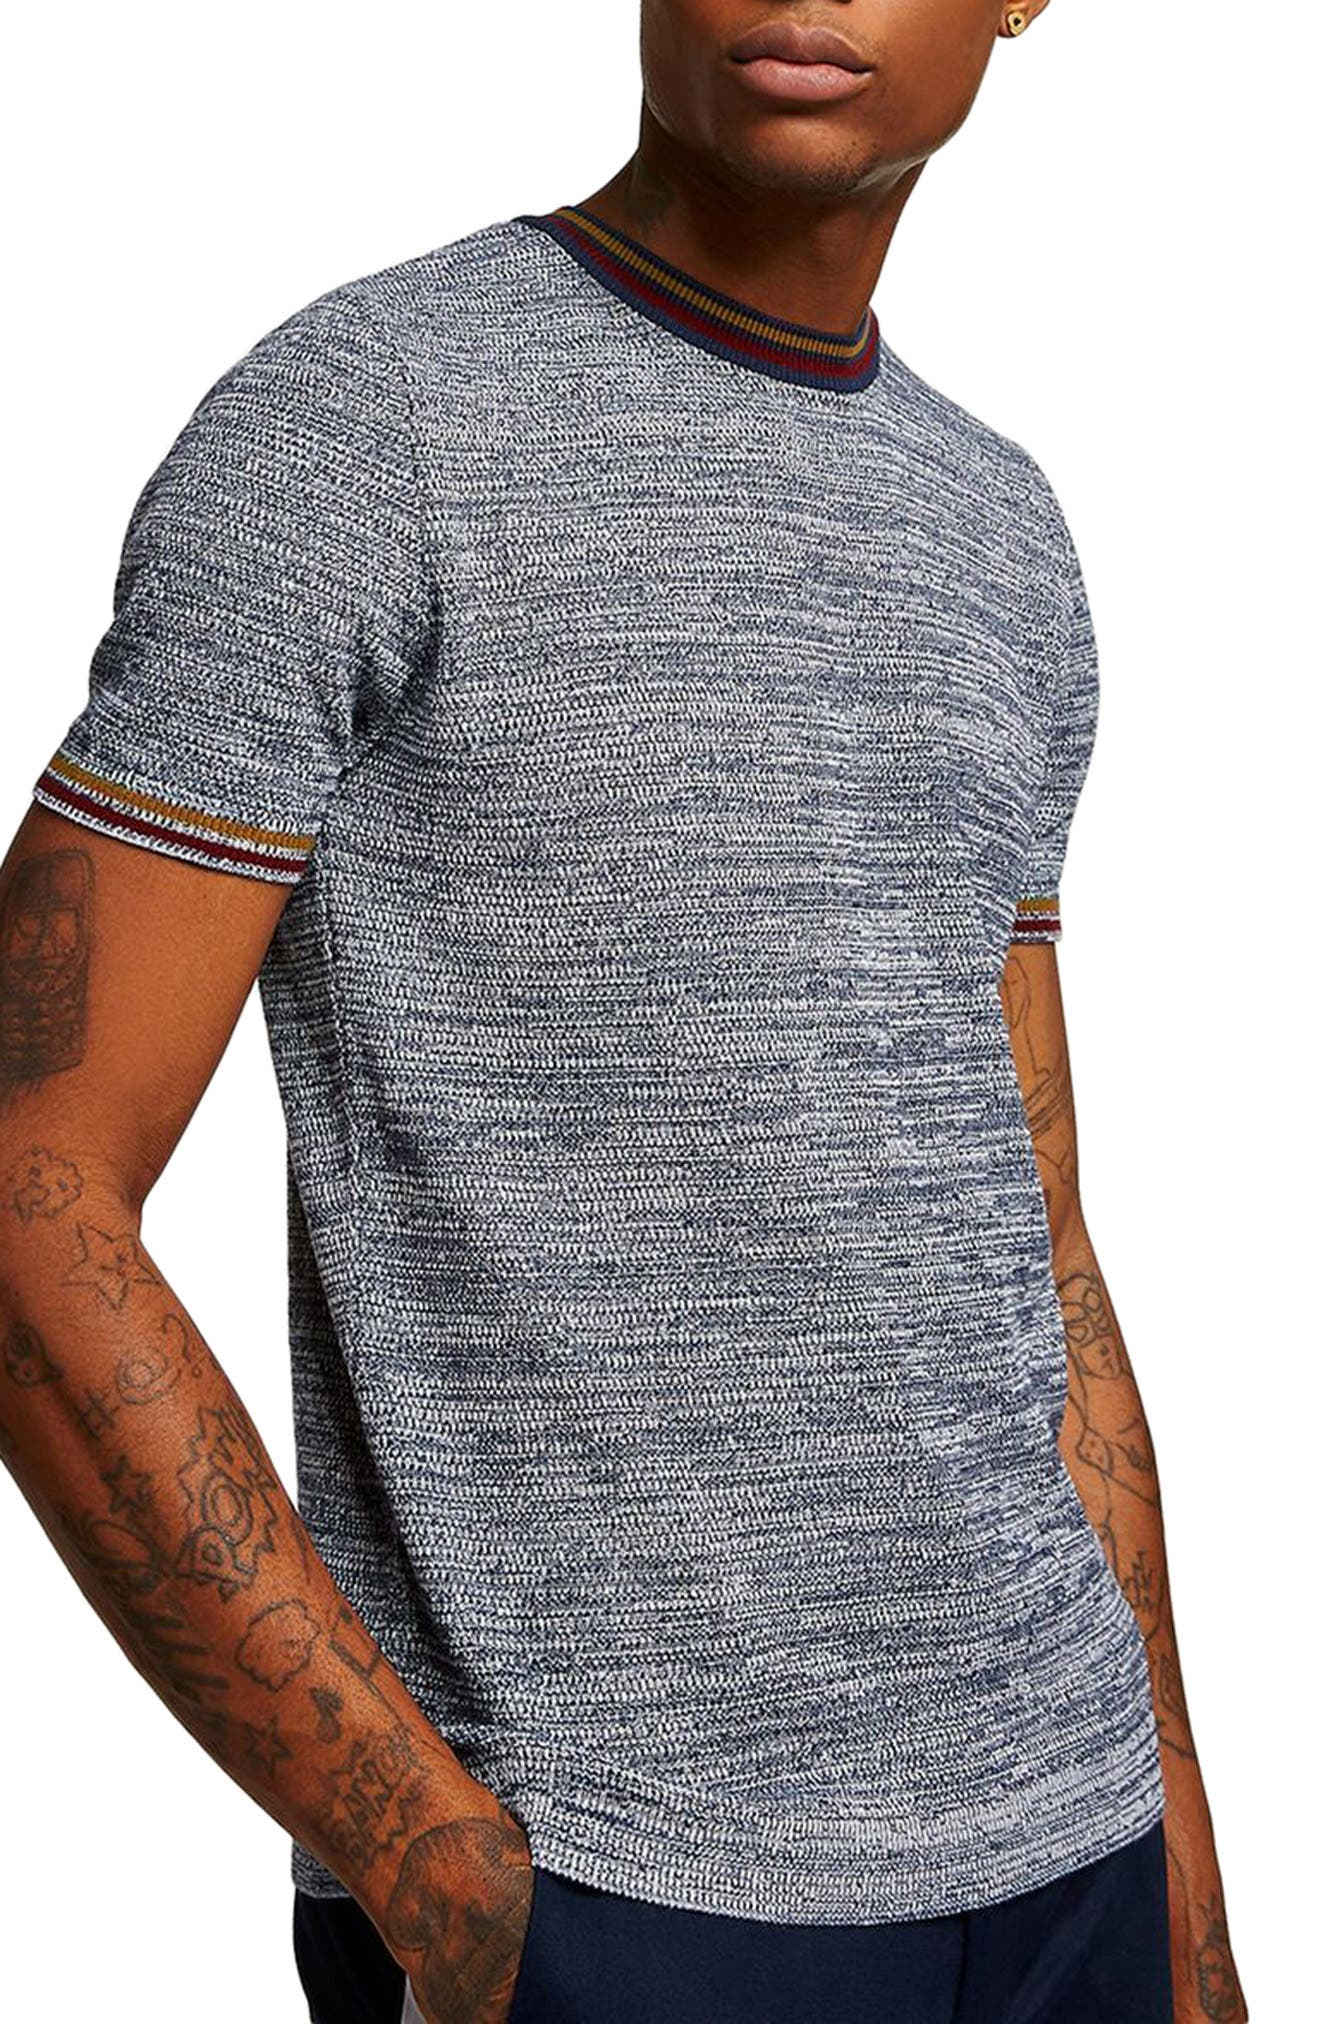 Topman Slim Fit Knit T-Shirt